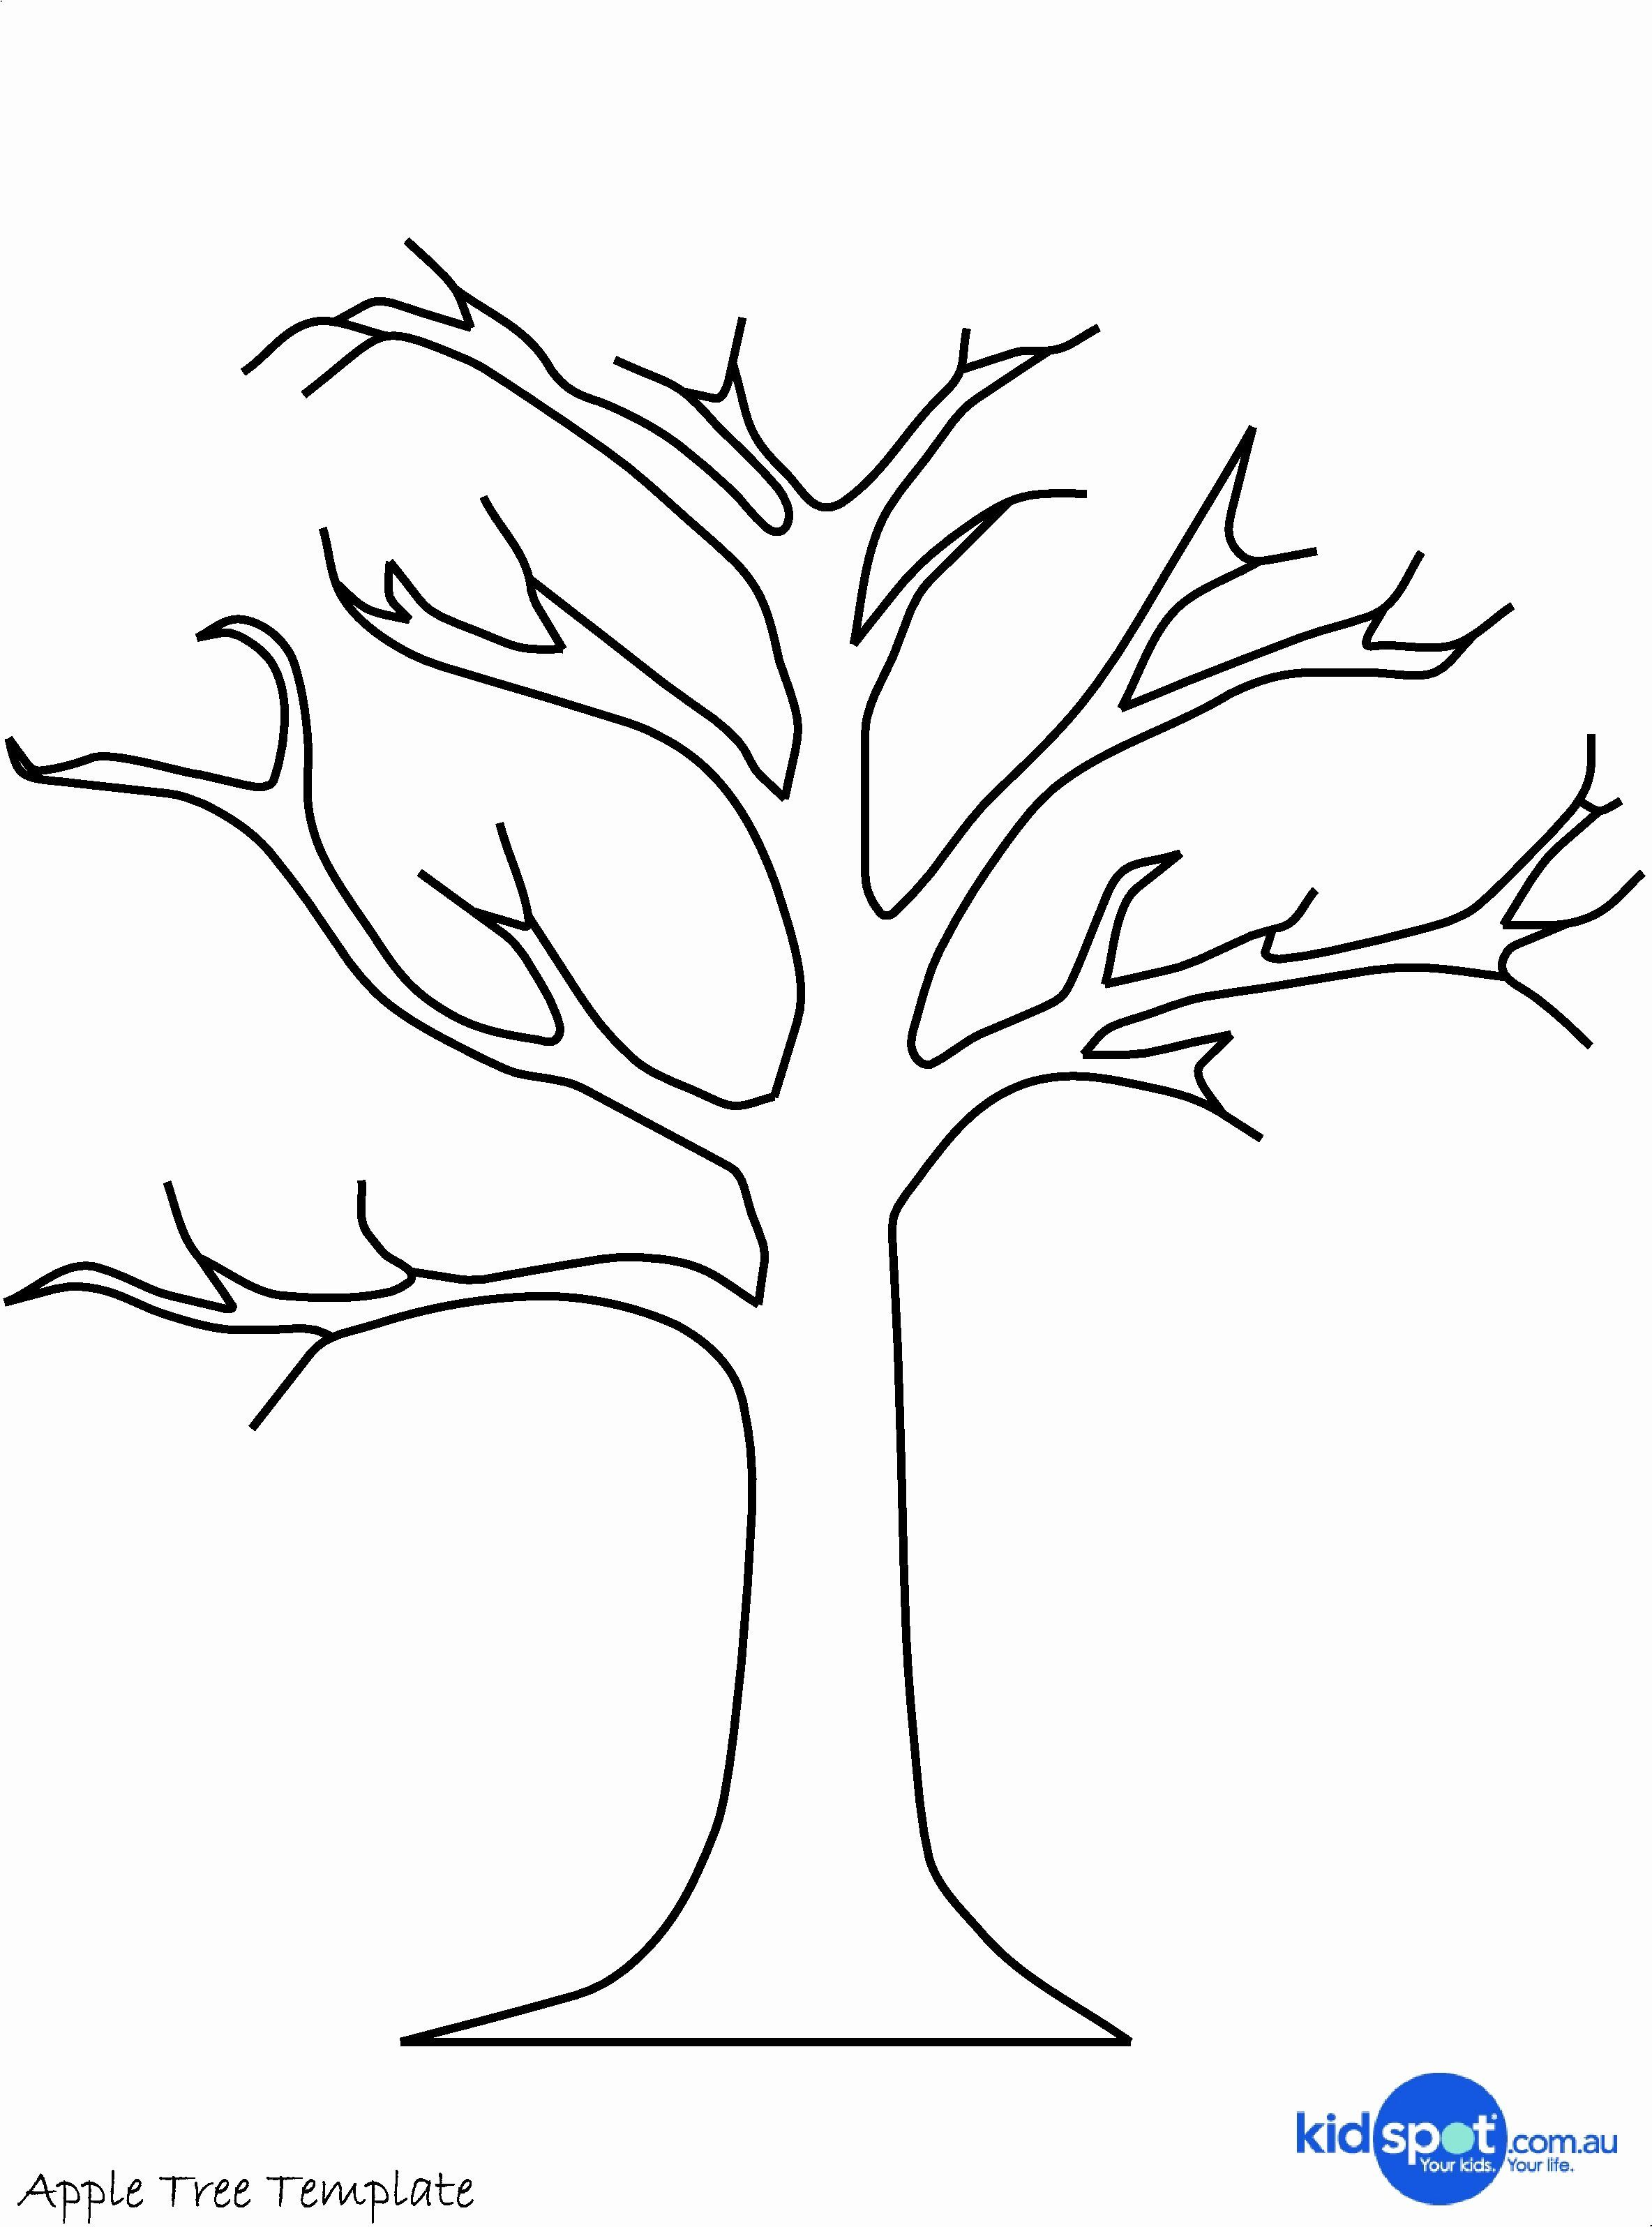 Tree Images Coloring Page Awesome Sycamore Tree Coloring Pages